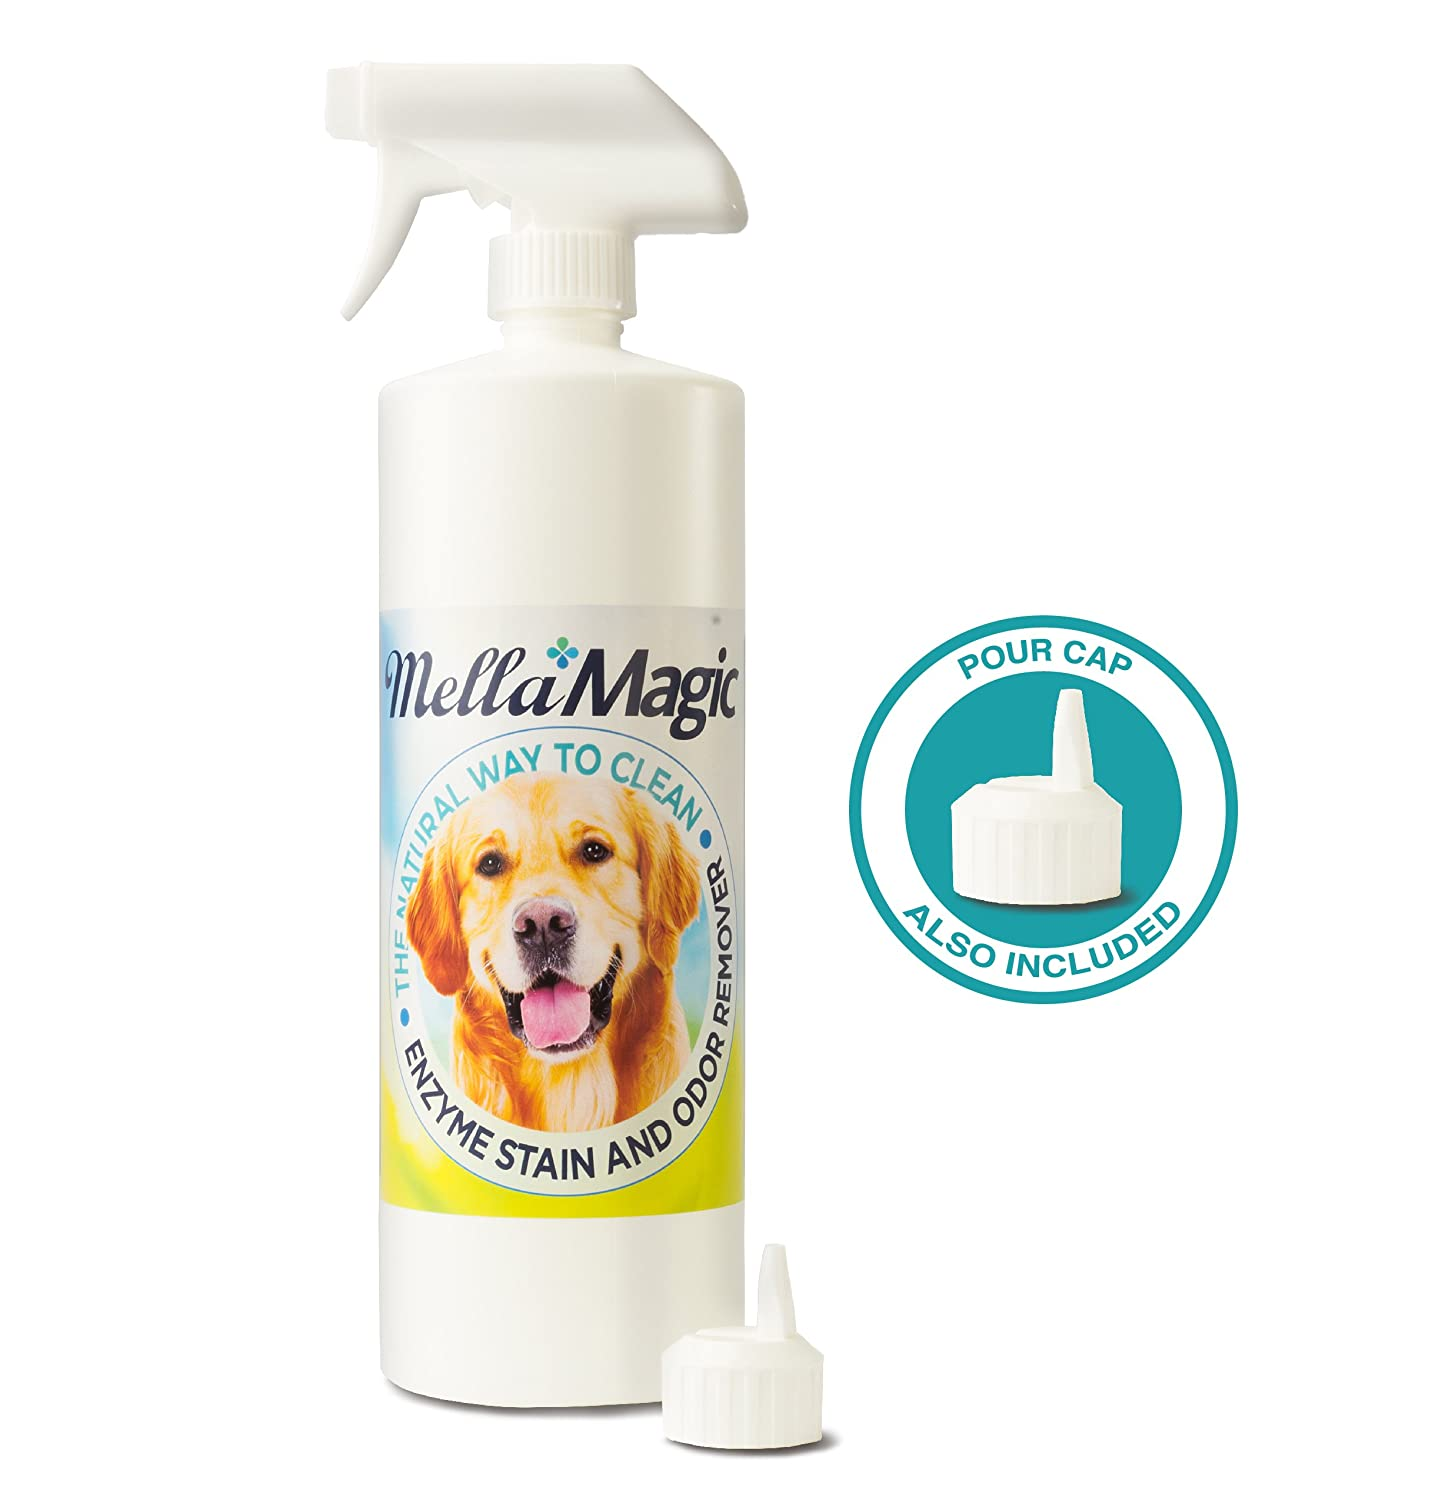 Mella Magic Enzyme Pet Stain Odor Remover Natural Environmentally Friendly and Effective Free How To Video Included